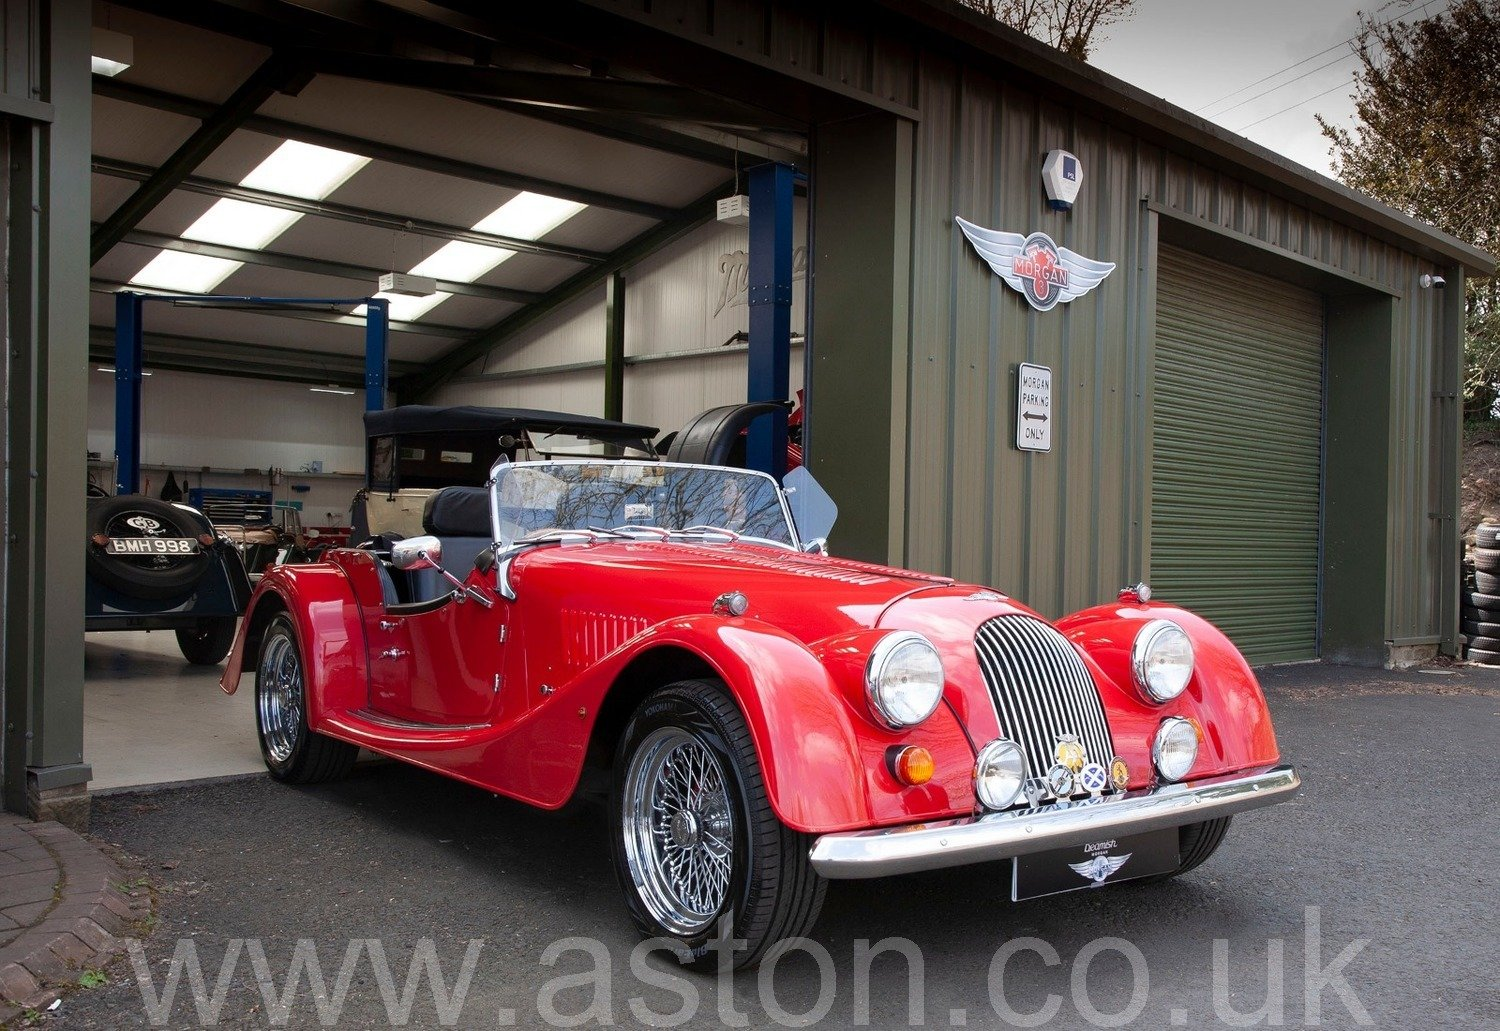 2000 Morgan Plus 8 For Sale (picture 2 of 6)